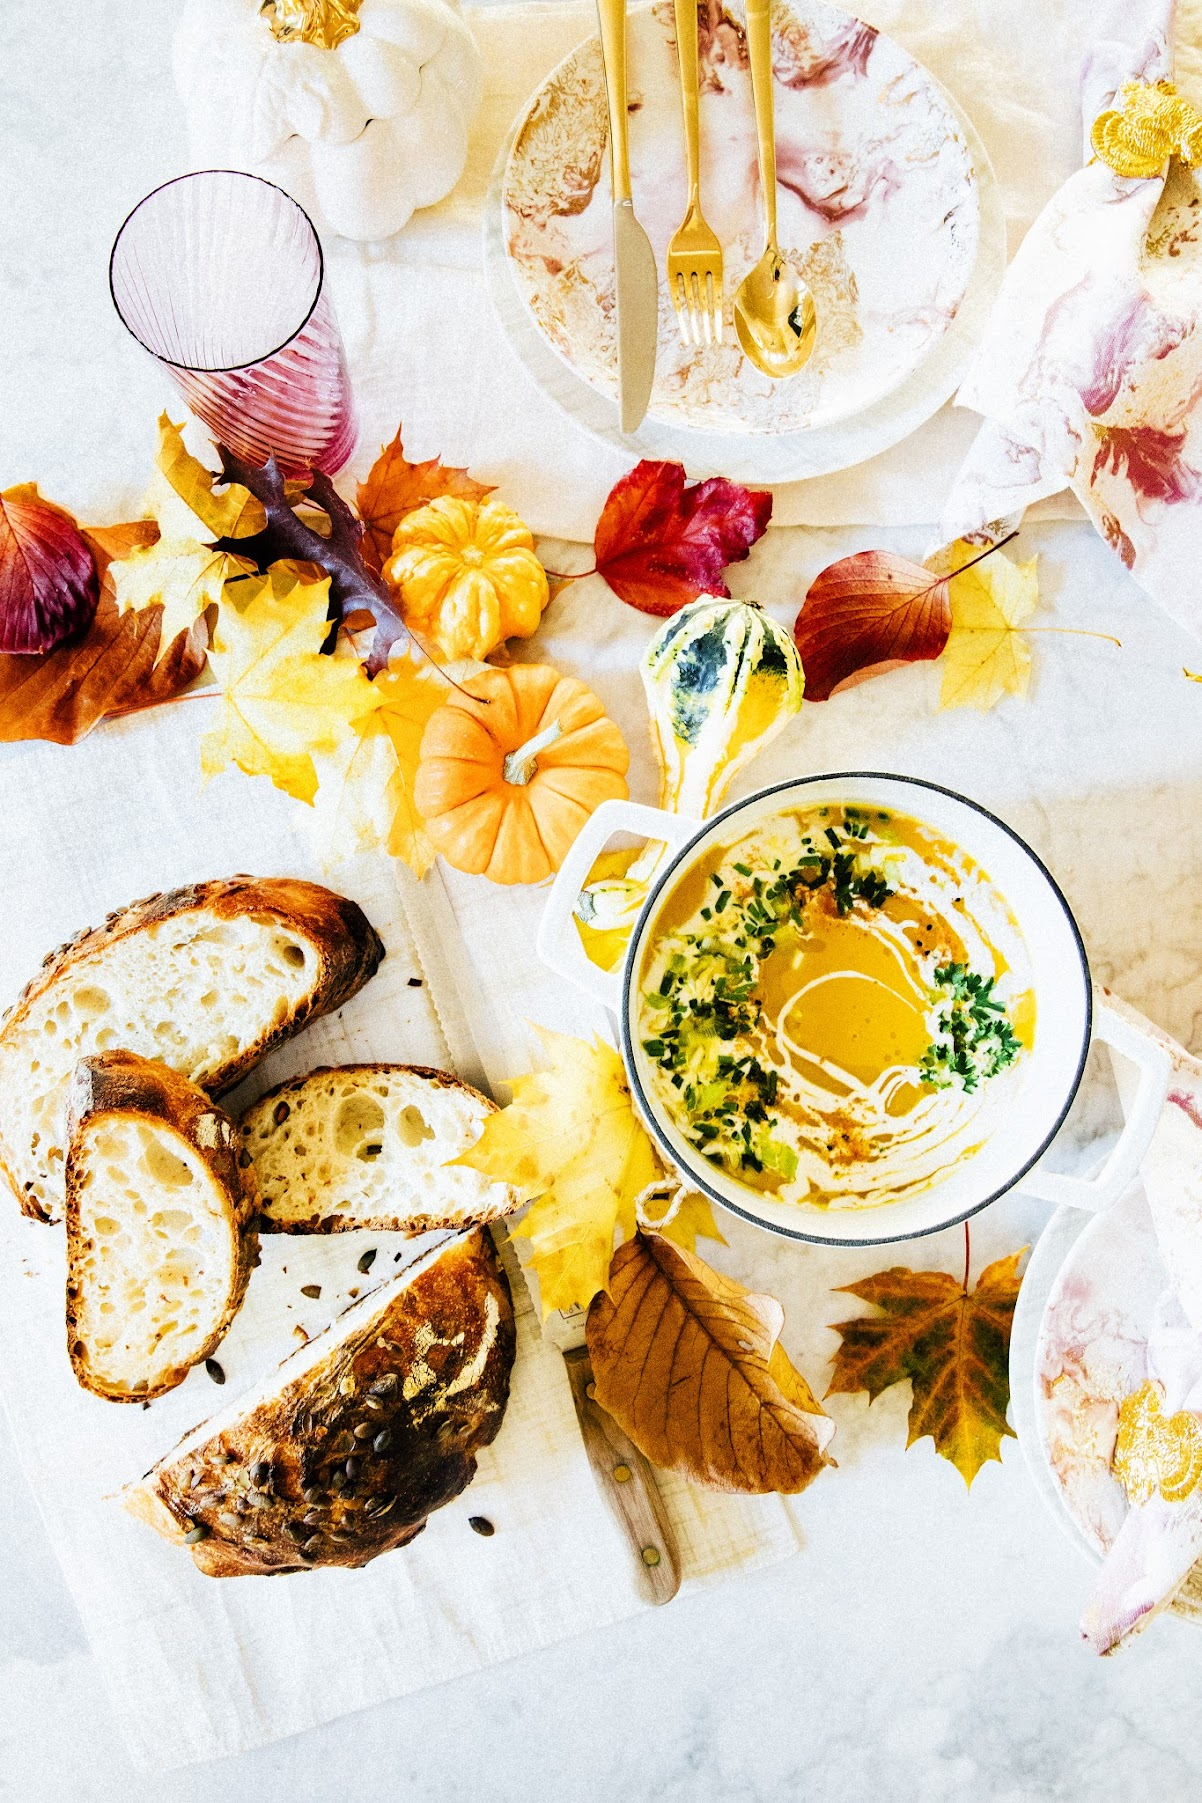 Dinner Party For Four Menu Ideas Part - 46: So Without Further Ado, Here Is An Easy, Breezy Autumn Dinner Party Menu  For Four Complete With Your Own Rustic, Artisan Bread. Enjoy!